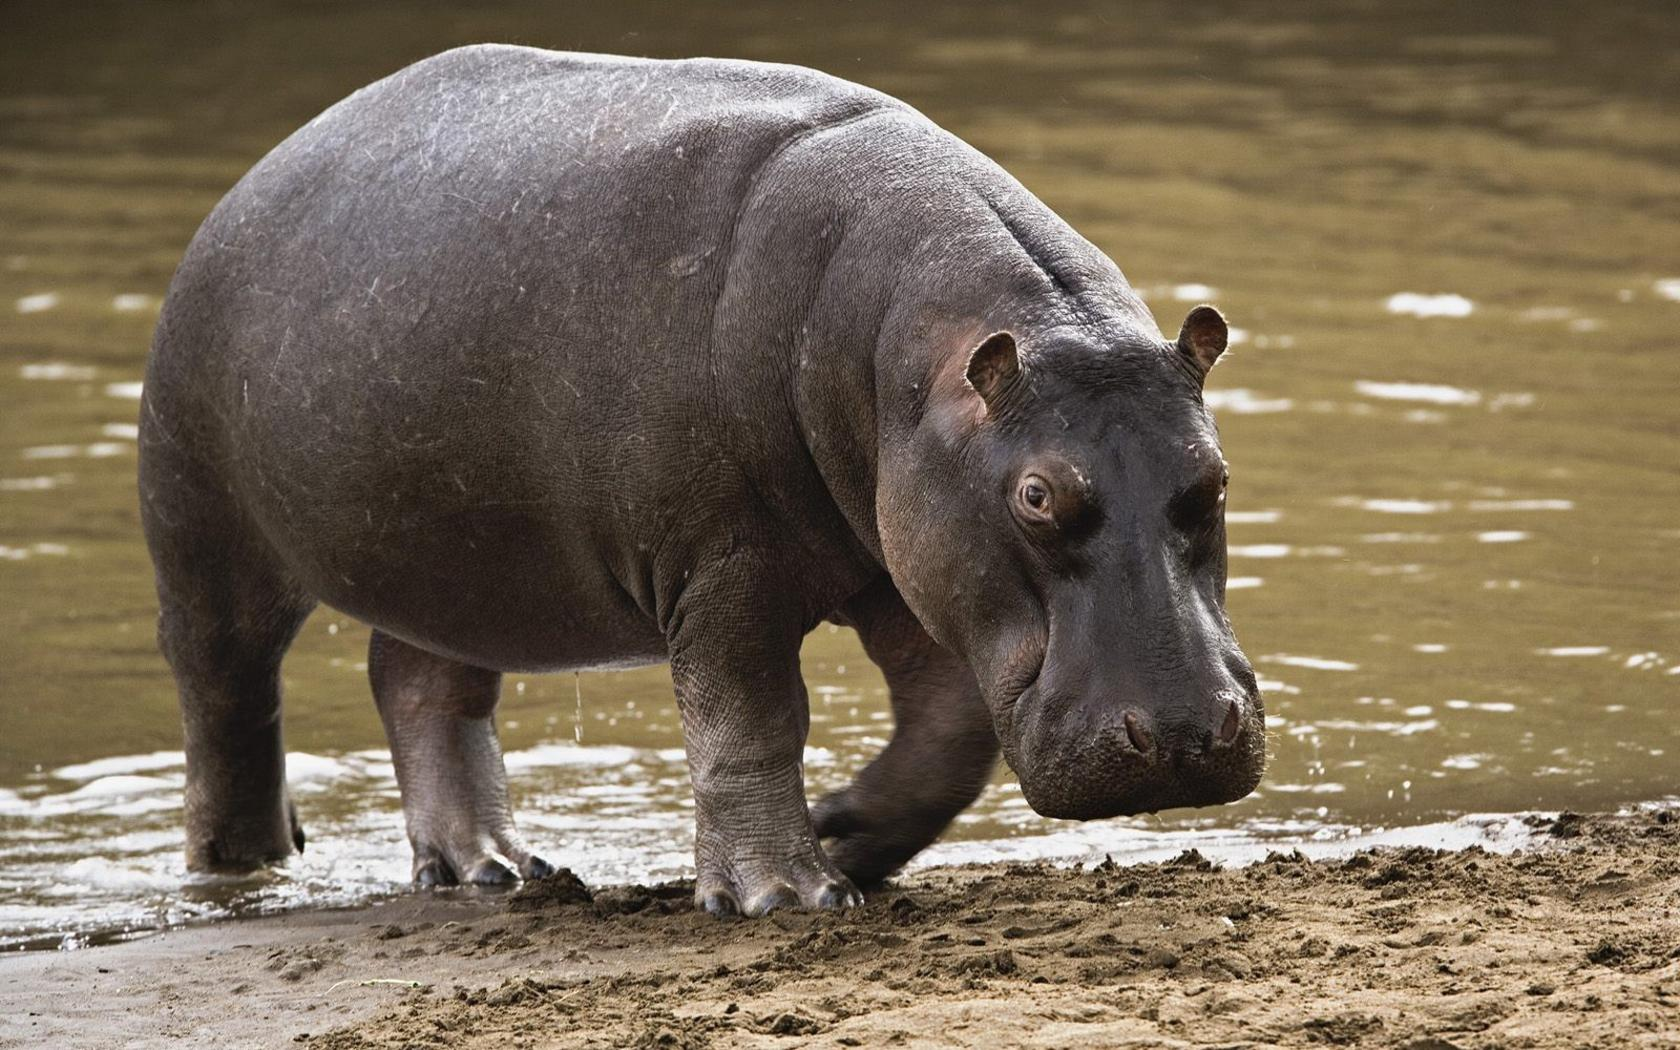 HQ Hippo Wallpapers | File 274.63Kb